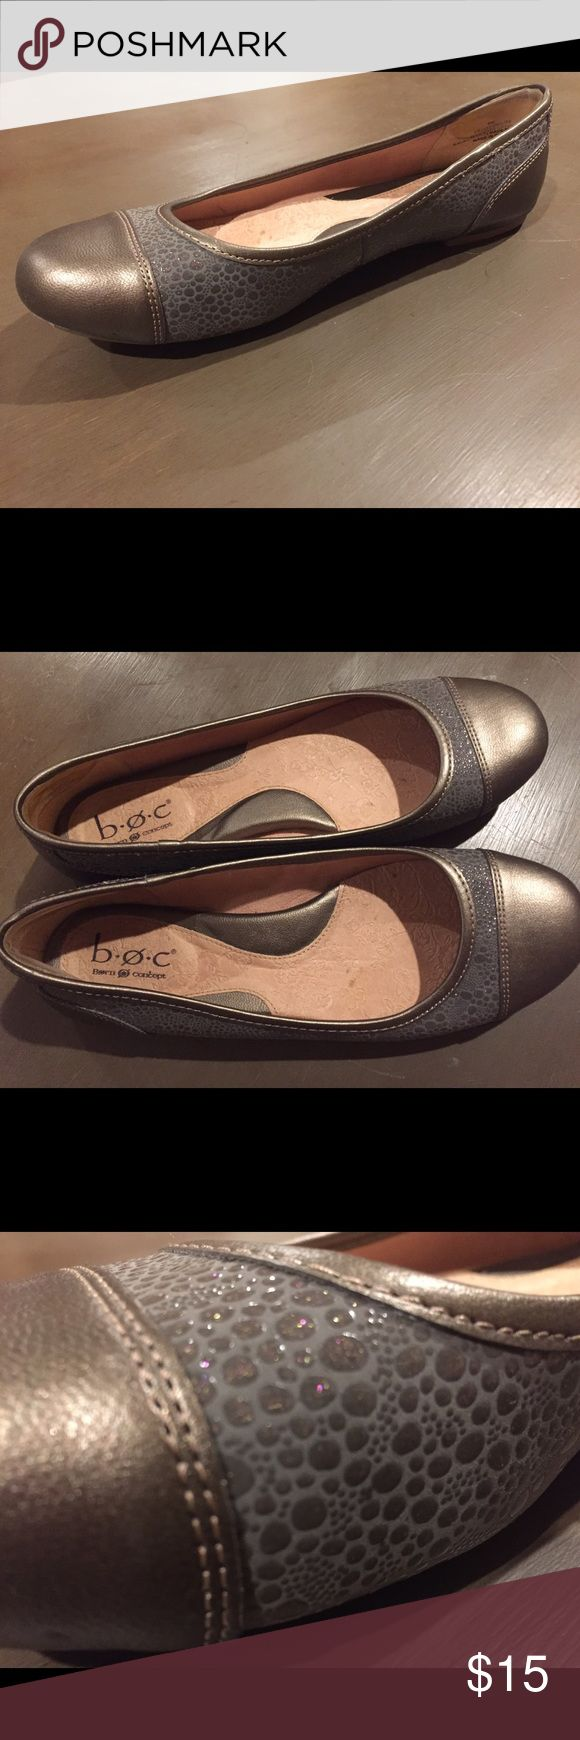 b.o.c by Born ballet flats b.o.c by Born. Grey and metallic ballet flats. b.o.c. Shoes Flats & Loafers